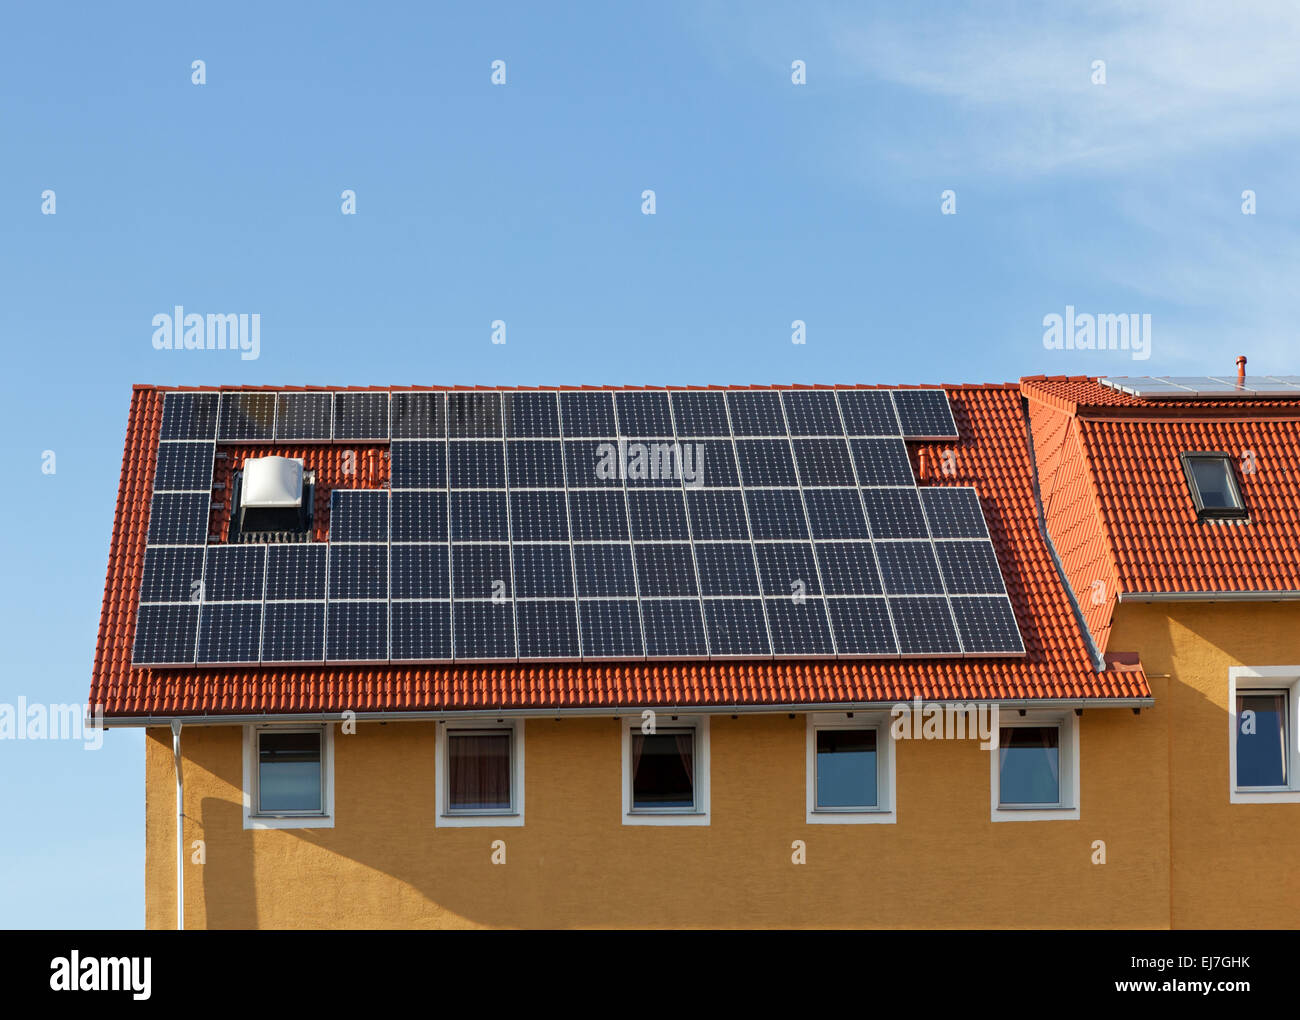 Solar panels on the roof - Stock Image